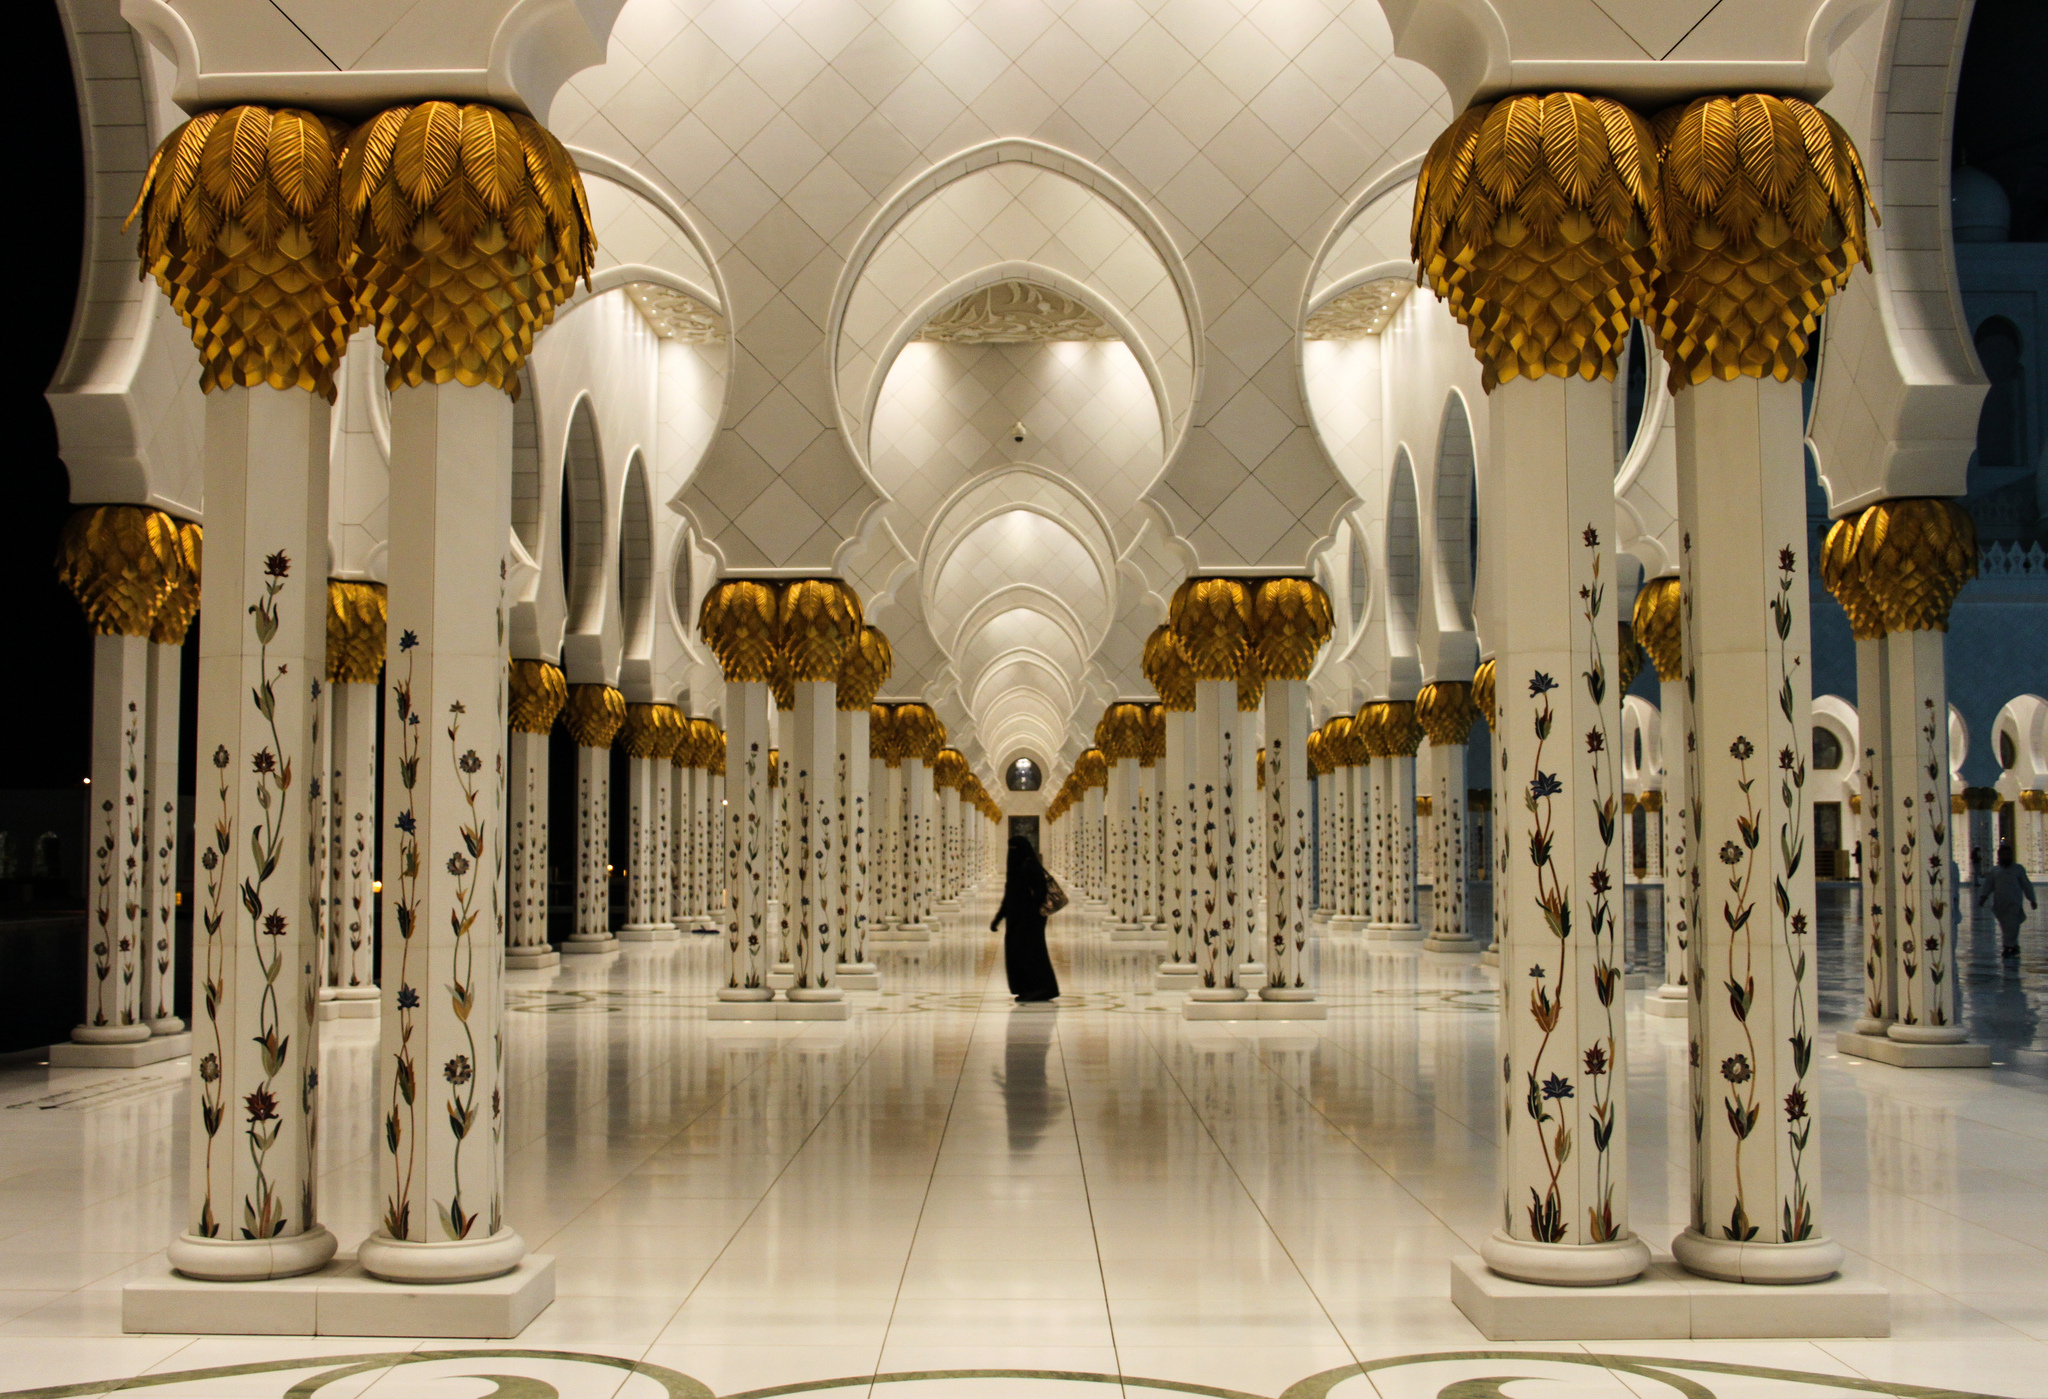 Sheikh Zayed Grand Mosque - United Arab Emirates